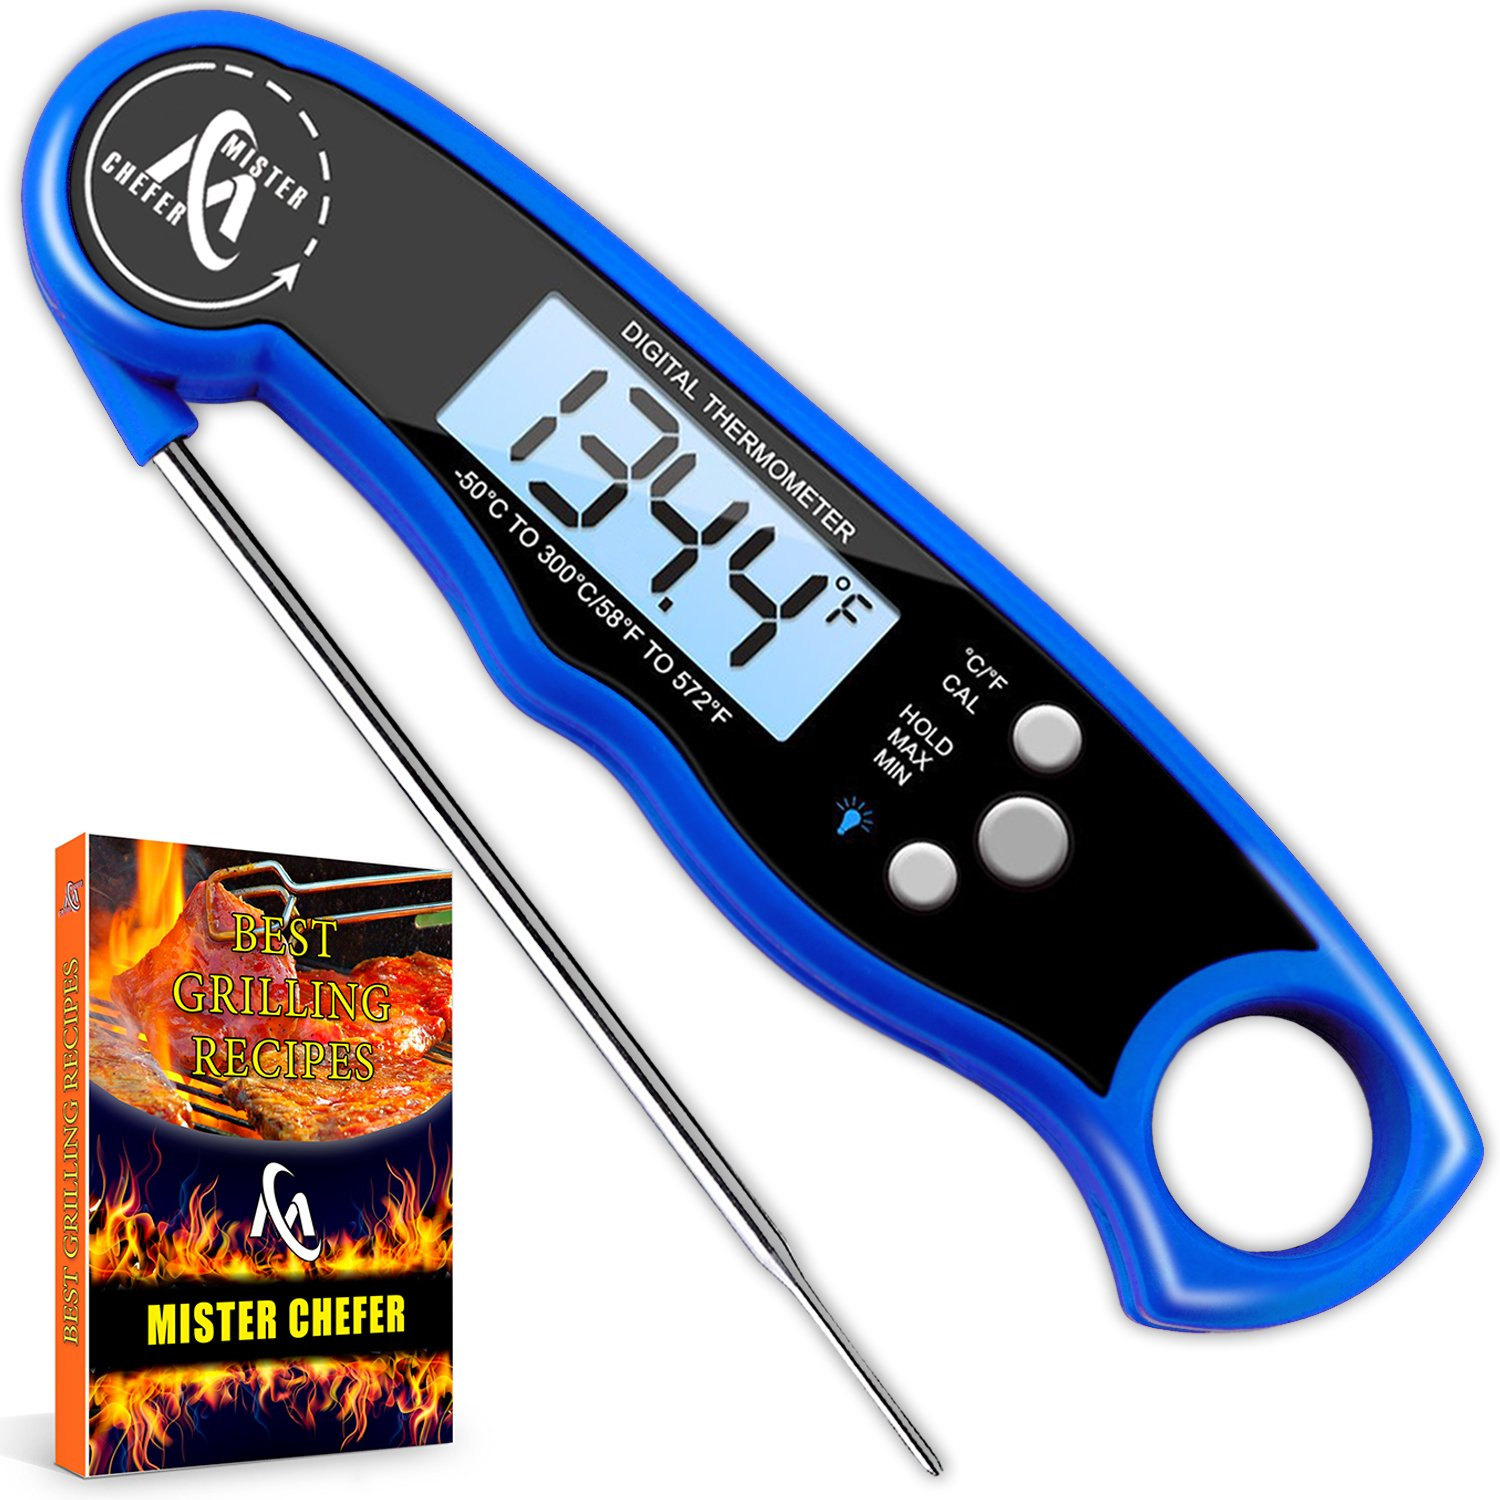 Digital Meat Thermometer - Best Waterproof Instant Read Thermometer with Calibration and Backlight functions (Blue)